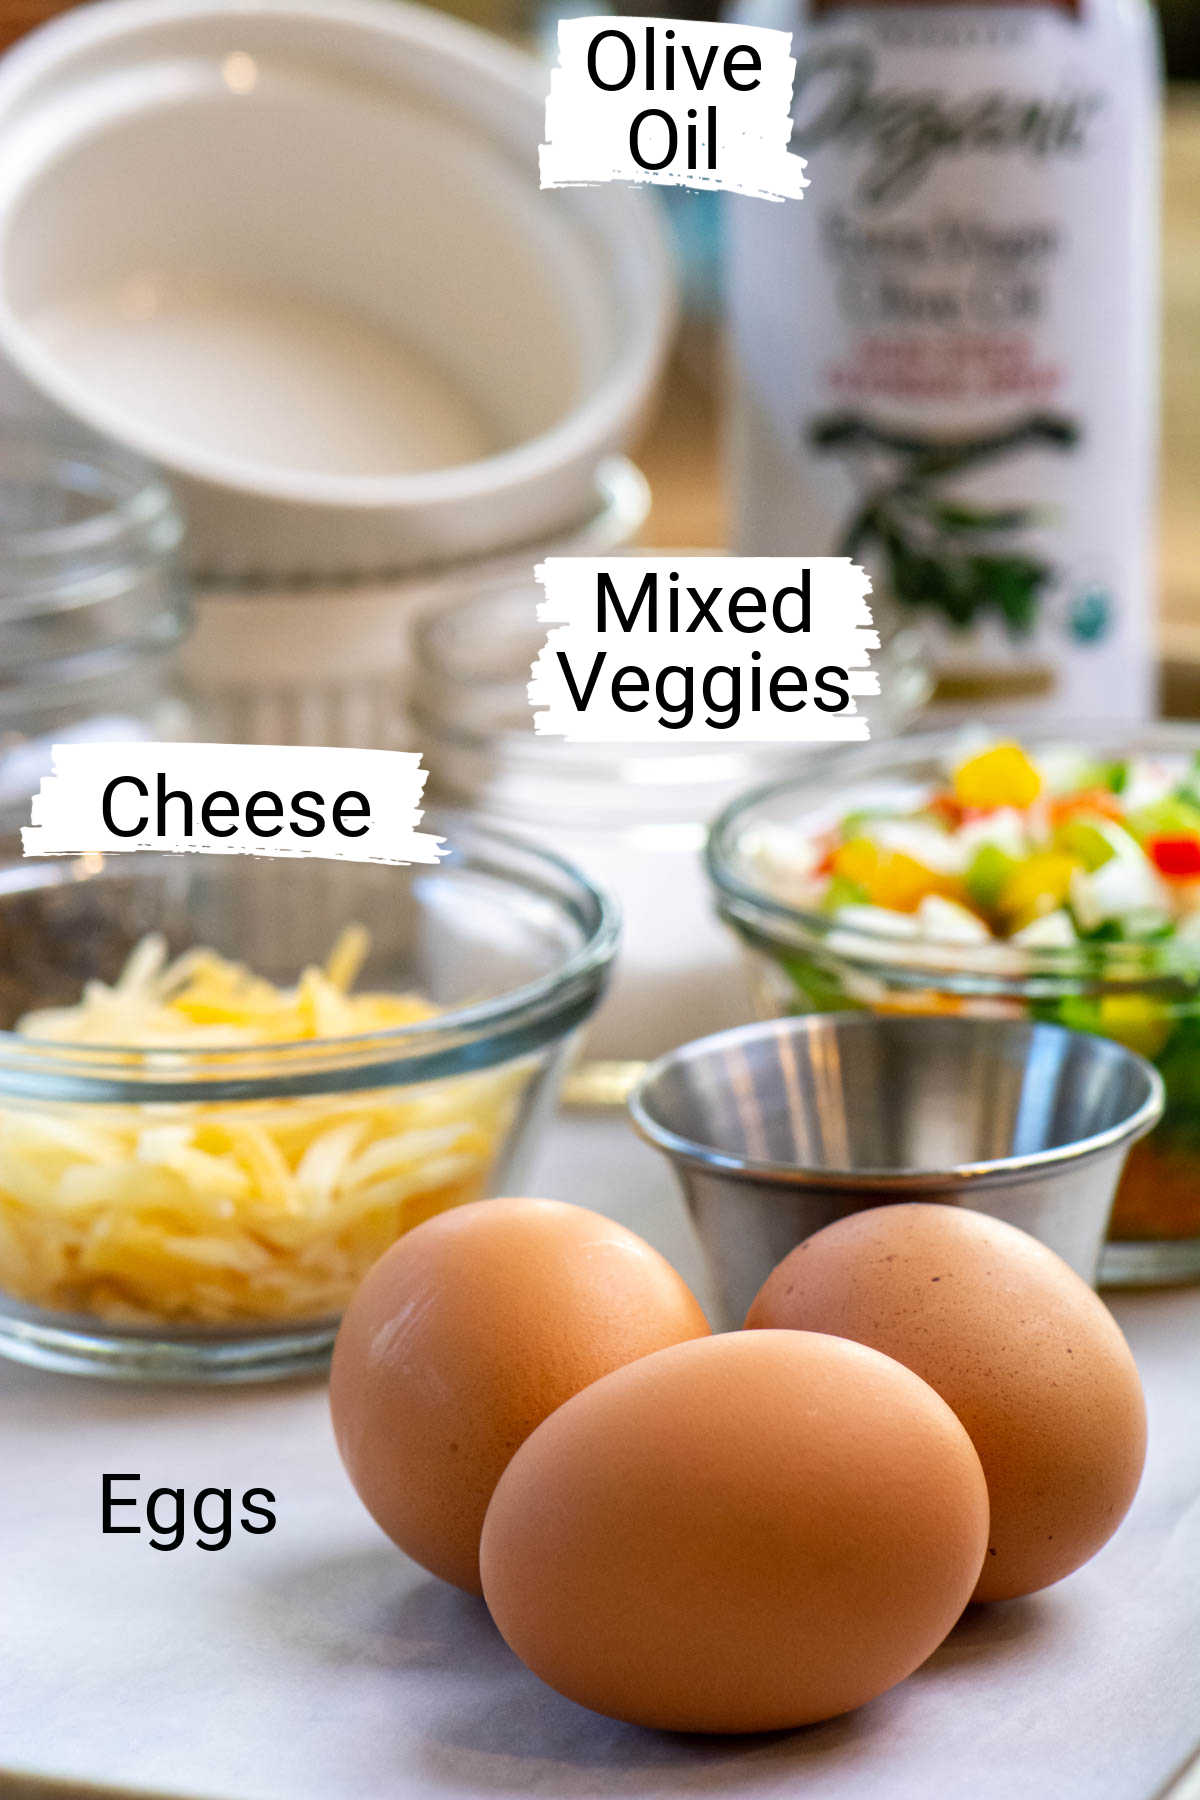 ingredient photo with eggs, cheese, and veggies with labels.